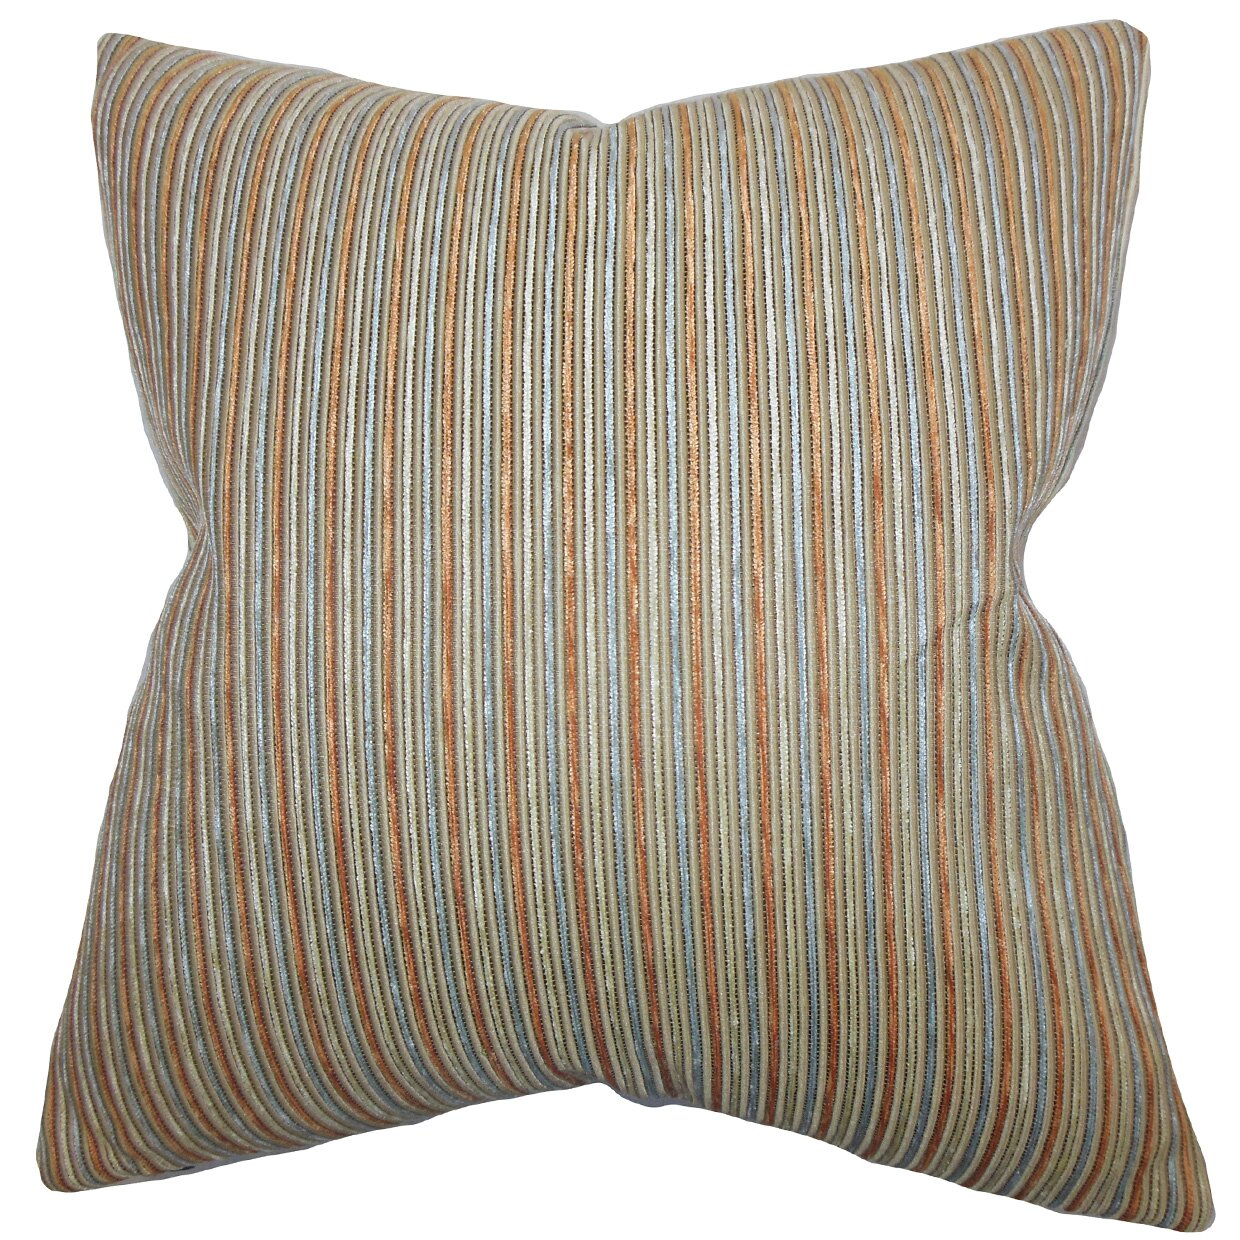 Decorative Pillows With Stripes : The Pillow Collection Elke Stripes Throw Pillow Wayfair